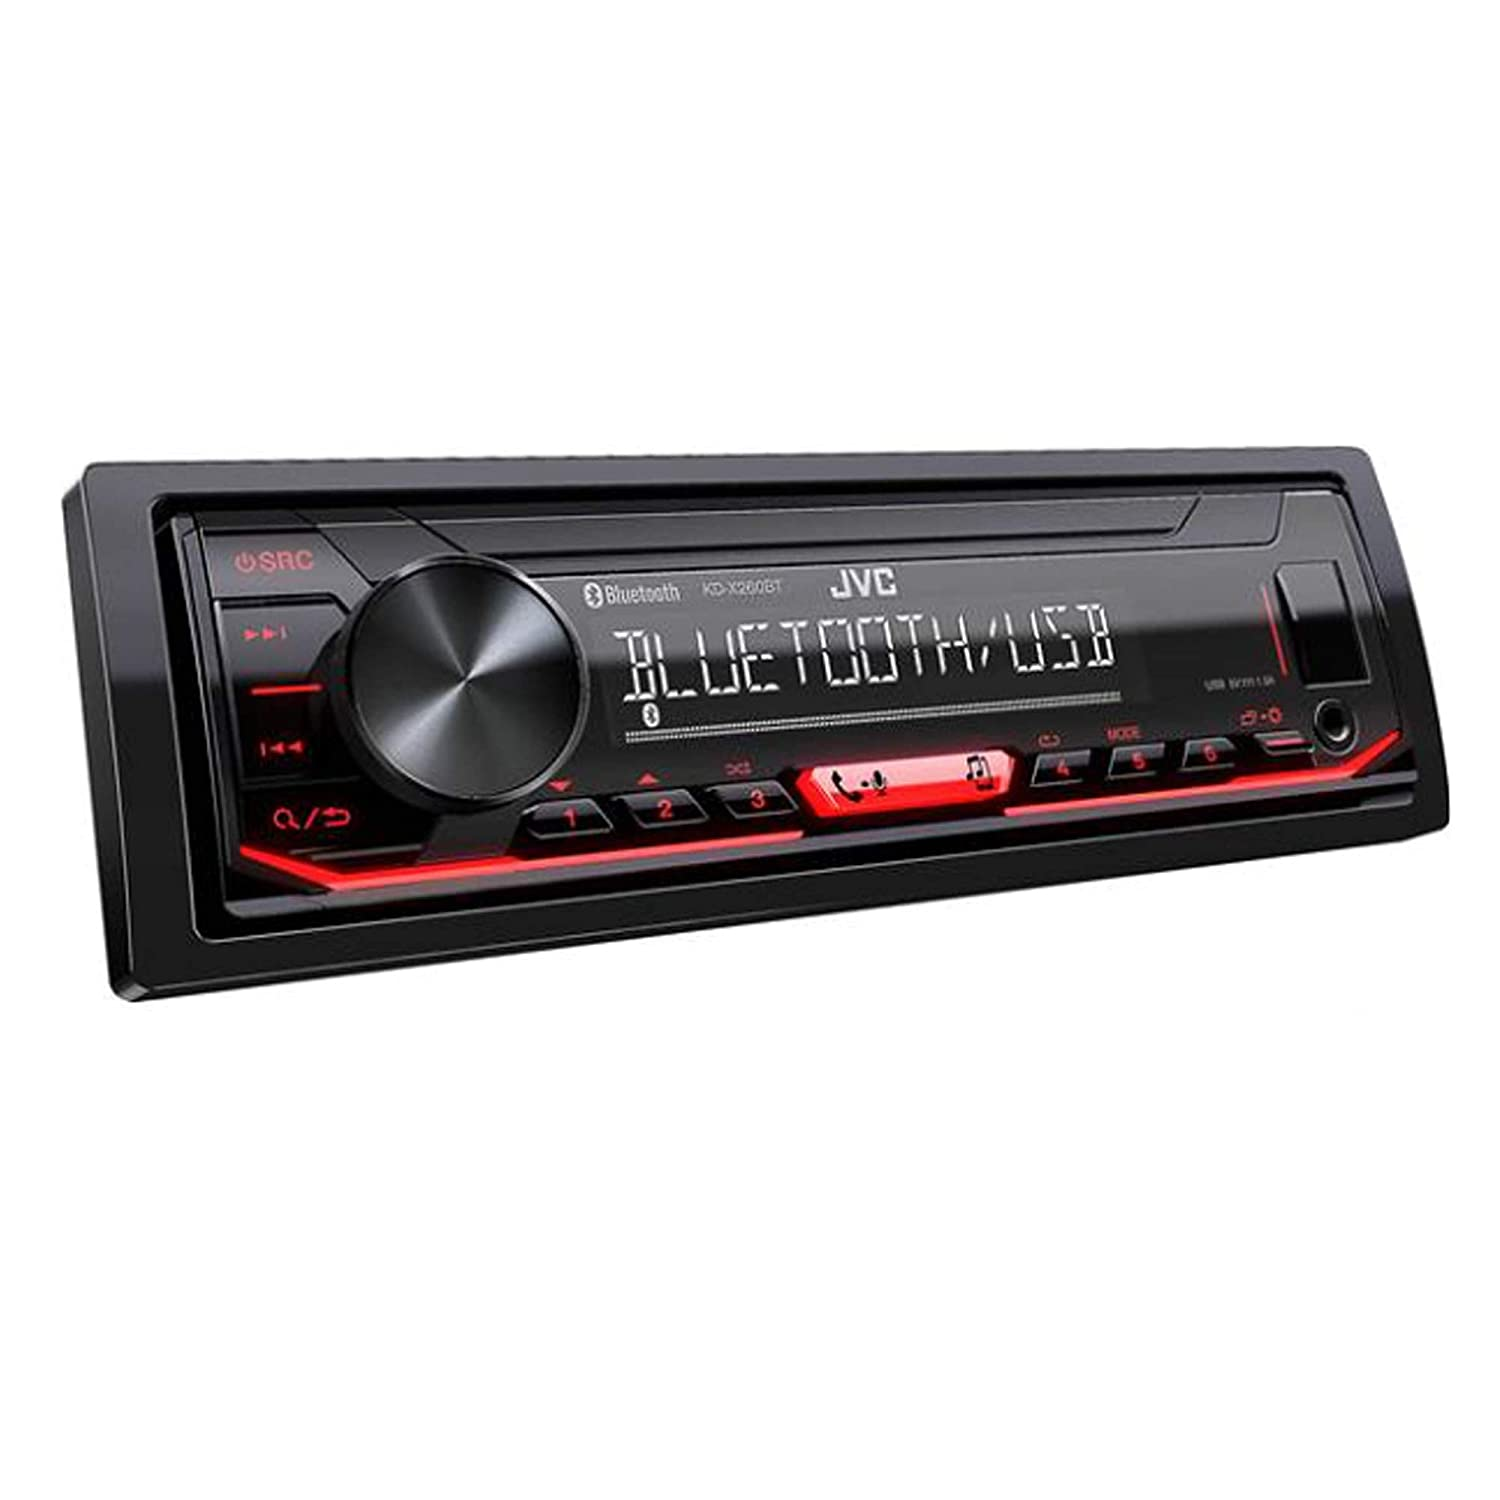 jvc kd x360bts 1 din bluetooth in dash mechless am fm digital media car stereo receiver with pandora iheartradio spotify control JVC 16 Pin Connector